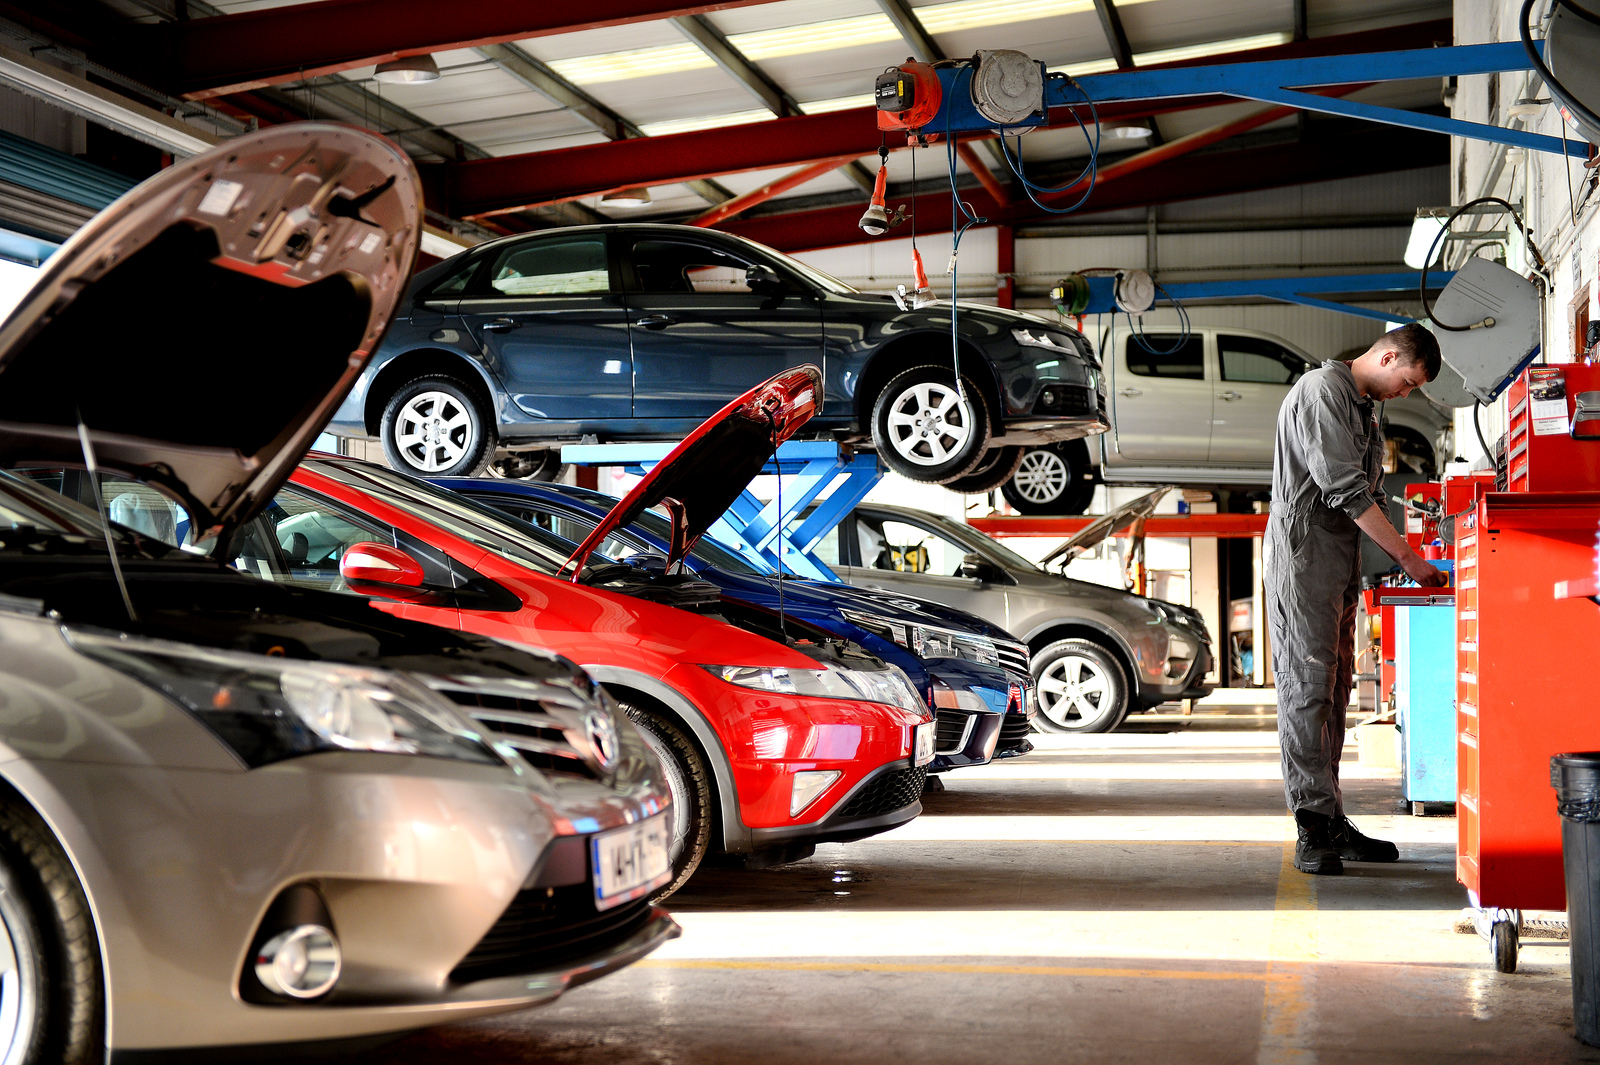 Take Your Defective Car To The Right Service Centre